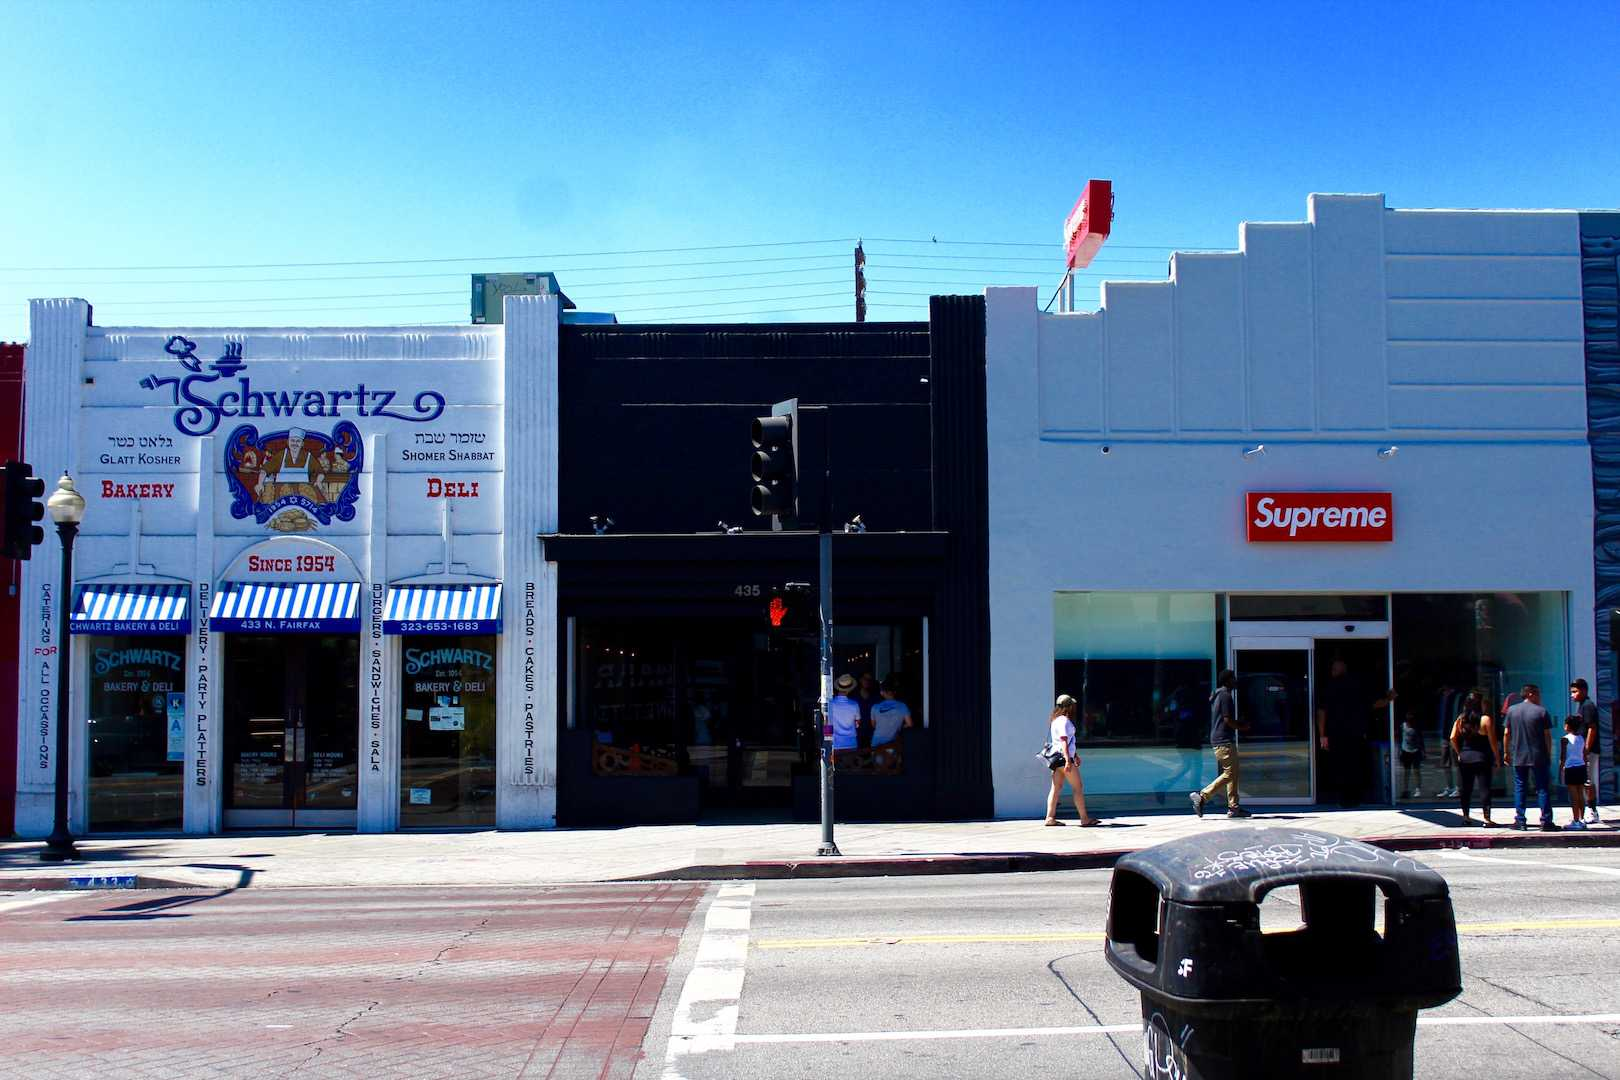 Clothing company Supreme resides next to historic Schwartz's Deli. Photo by Avalon Cole